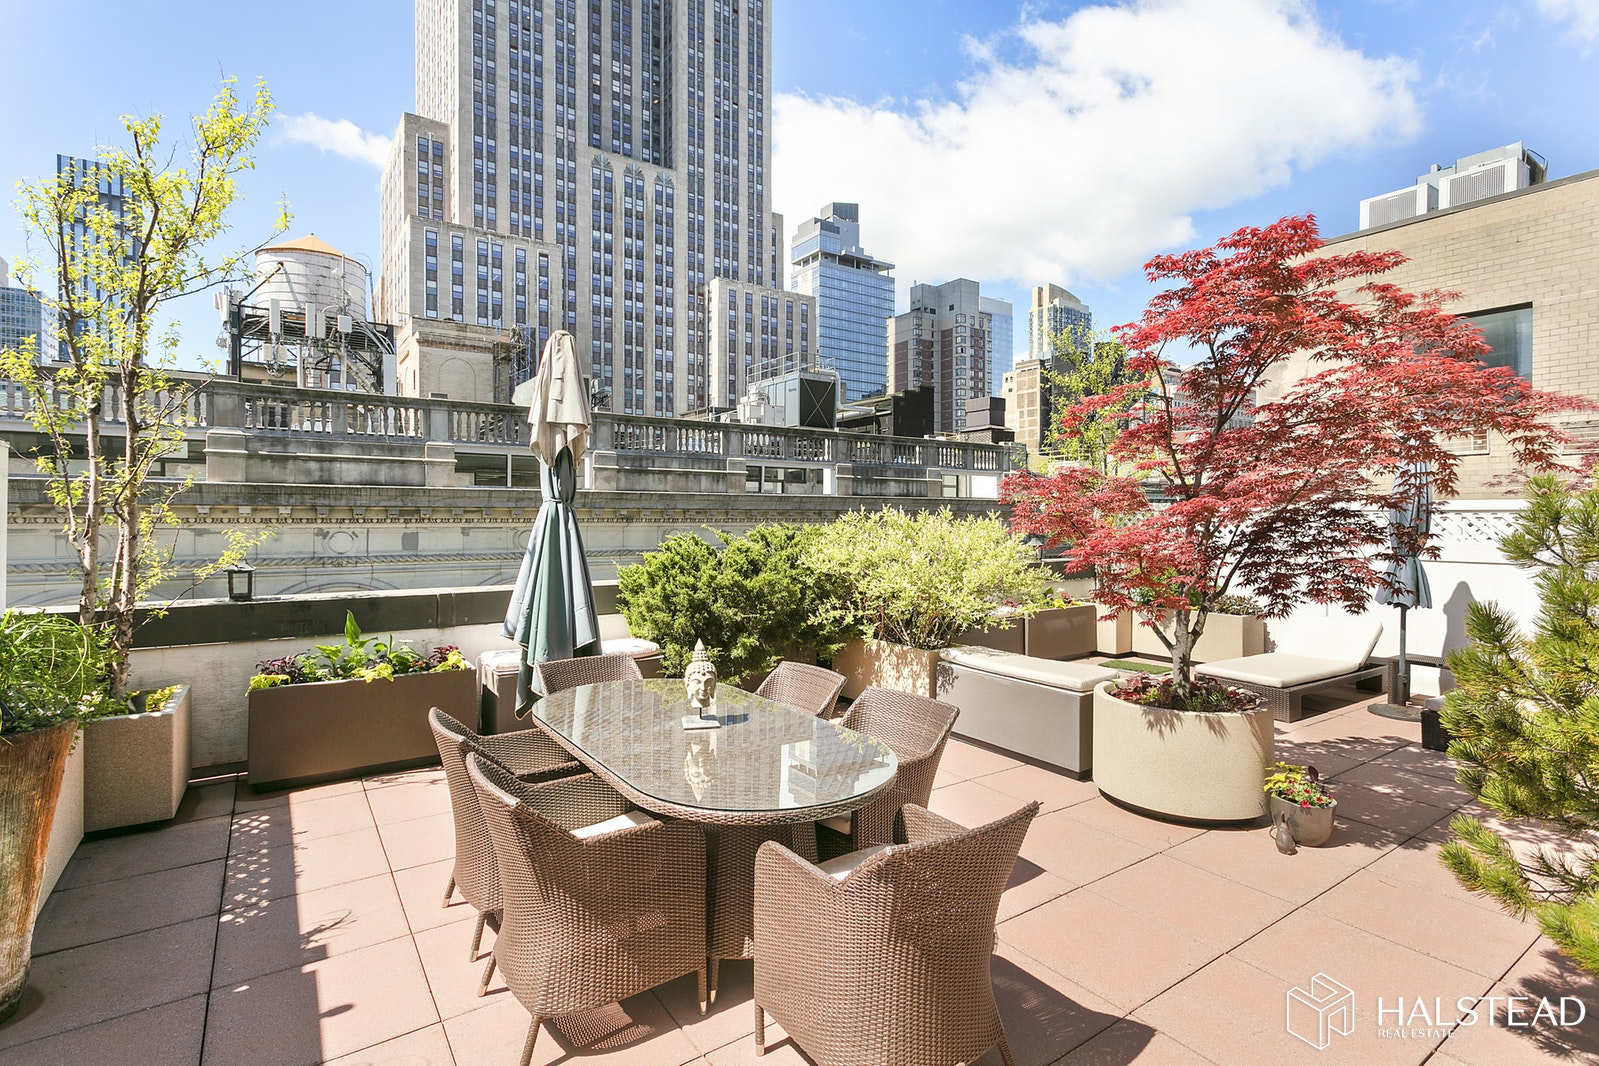 372 Fifth Avenue Phb, Midtown East, NYC, 10018, $1,745,000, Property For Sale, Halstead Real Estate, Photo 1